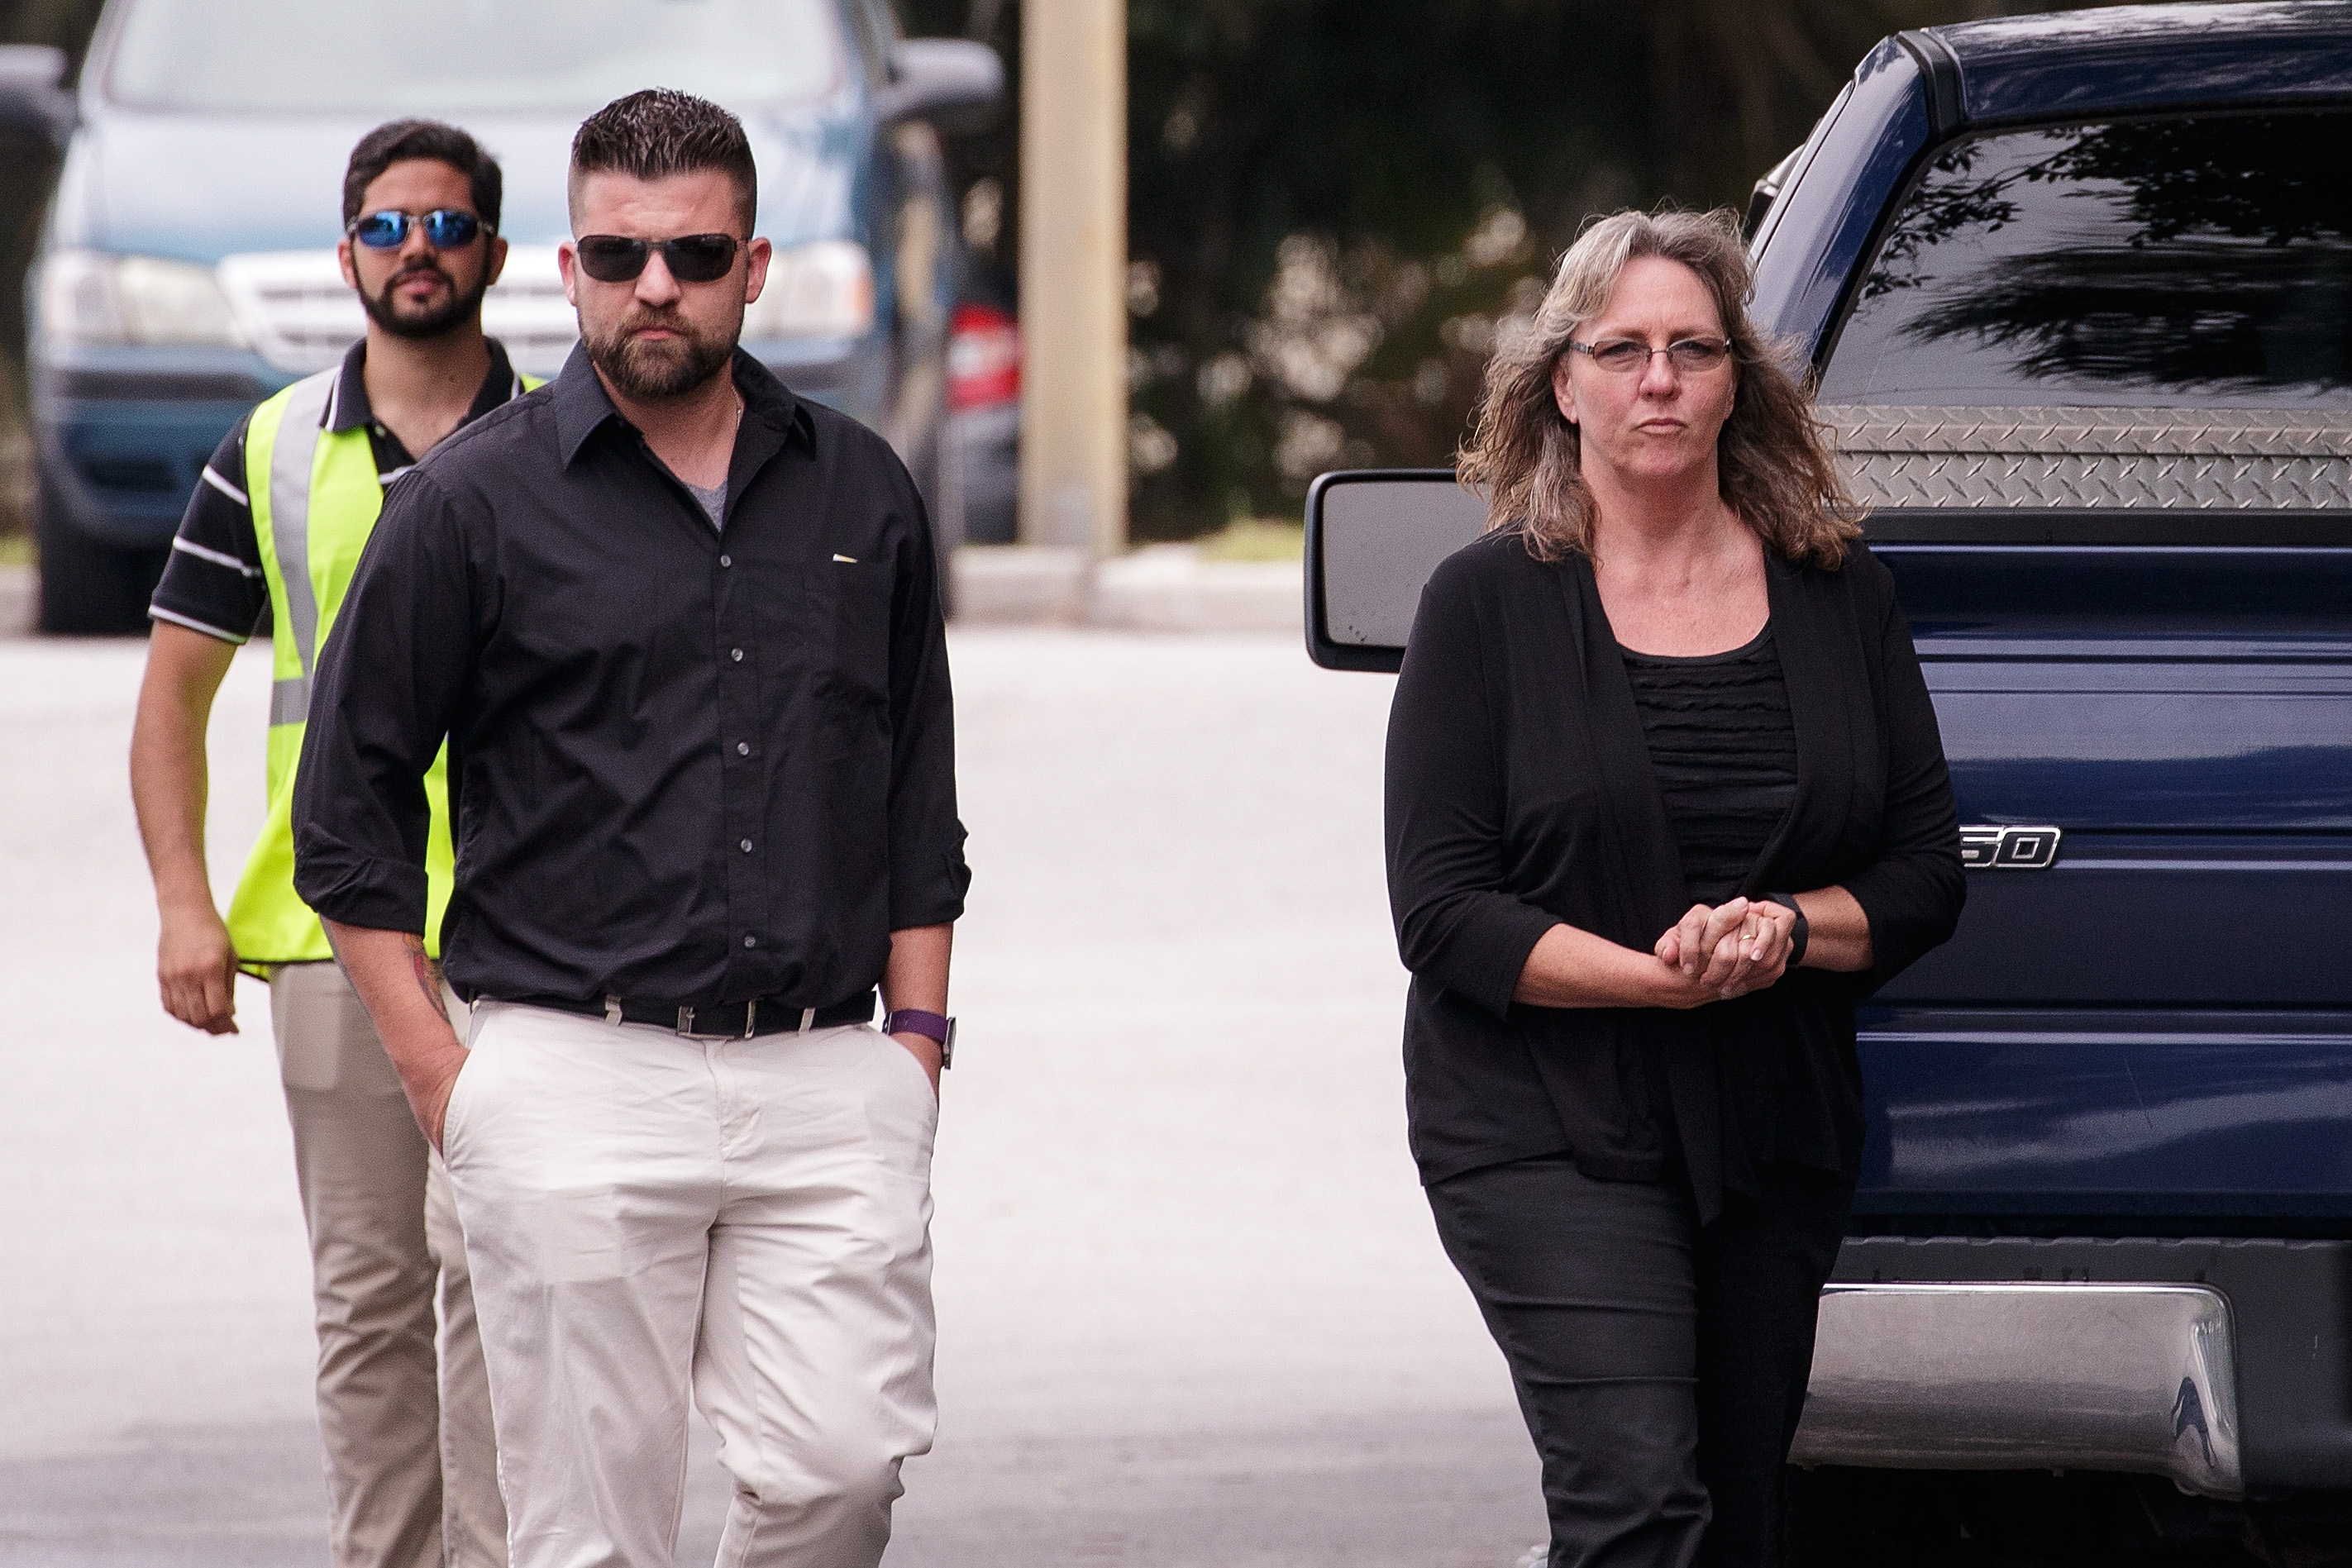 Christine Leinonen (R) arrives at the wake for her son Christopher  Dru  Leinonen, June 17, 2016 in Orlando, Florida.